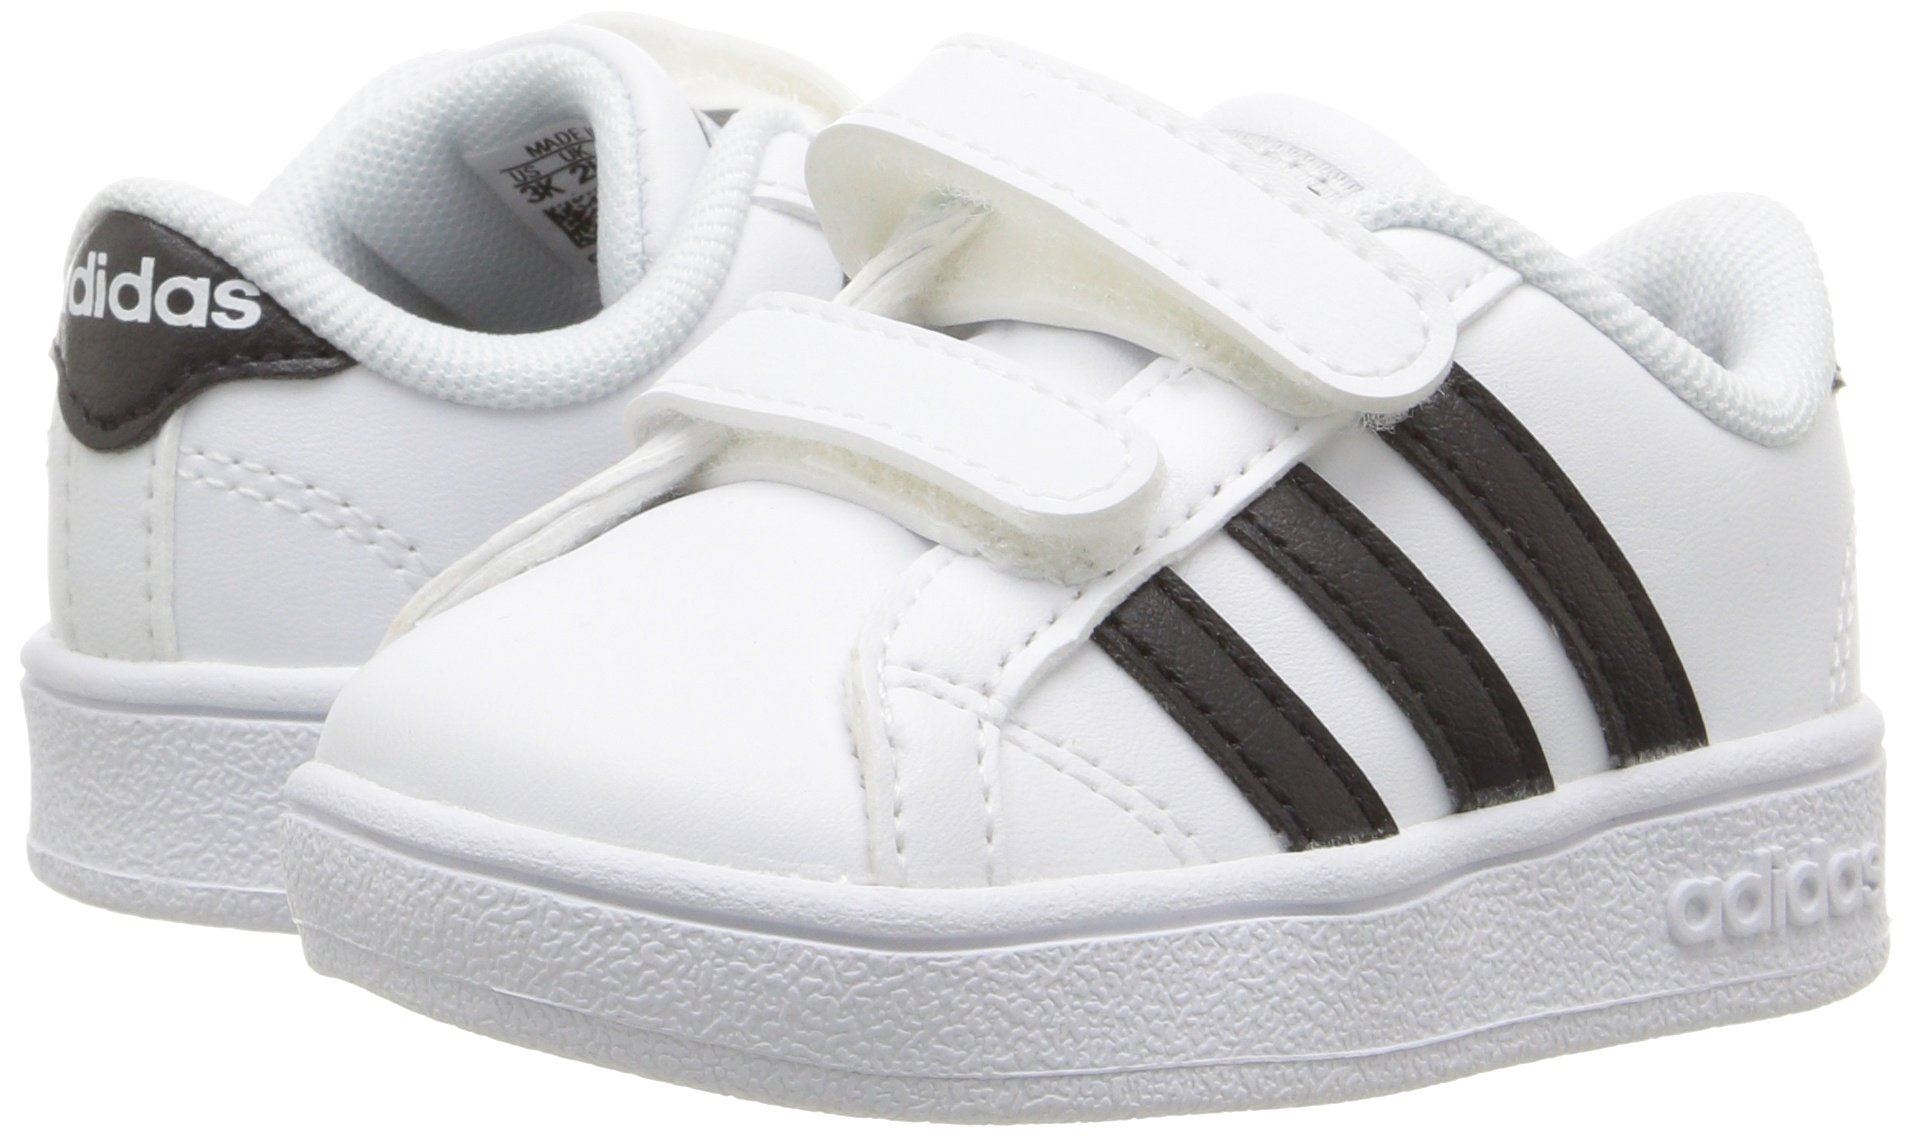 adidas Performance Baby Baseline Sneaker, White/Black/White, 6.5K M US Toddler by adidas (Image #6)